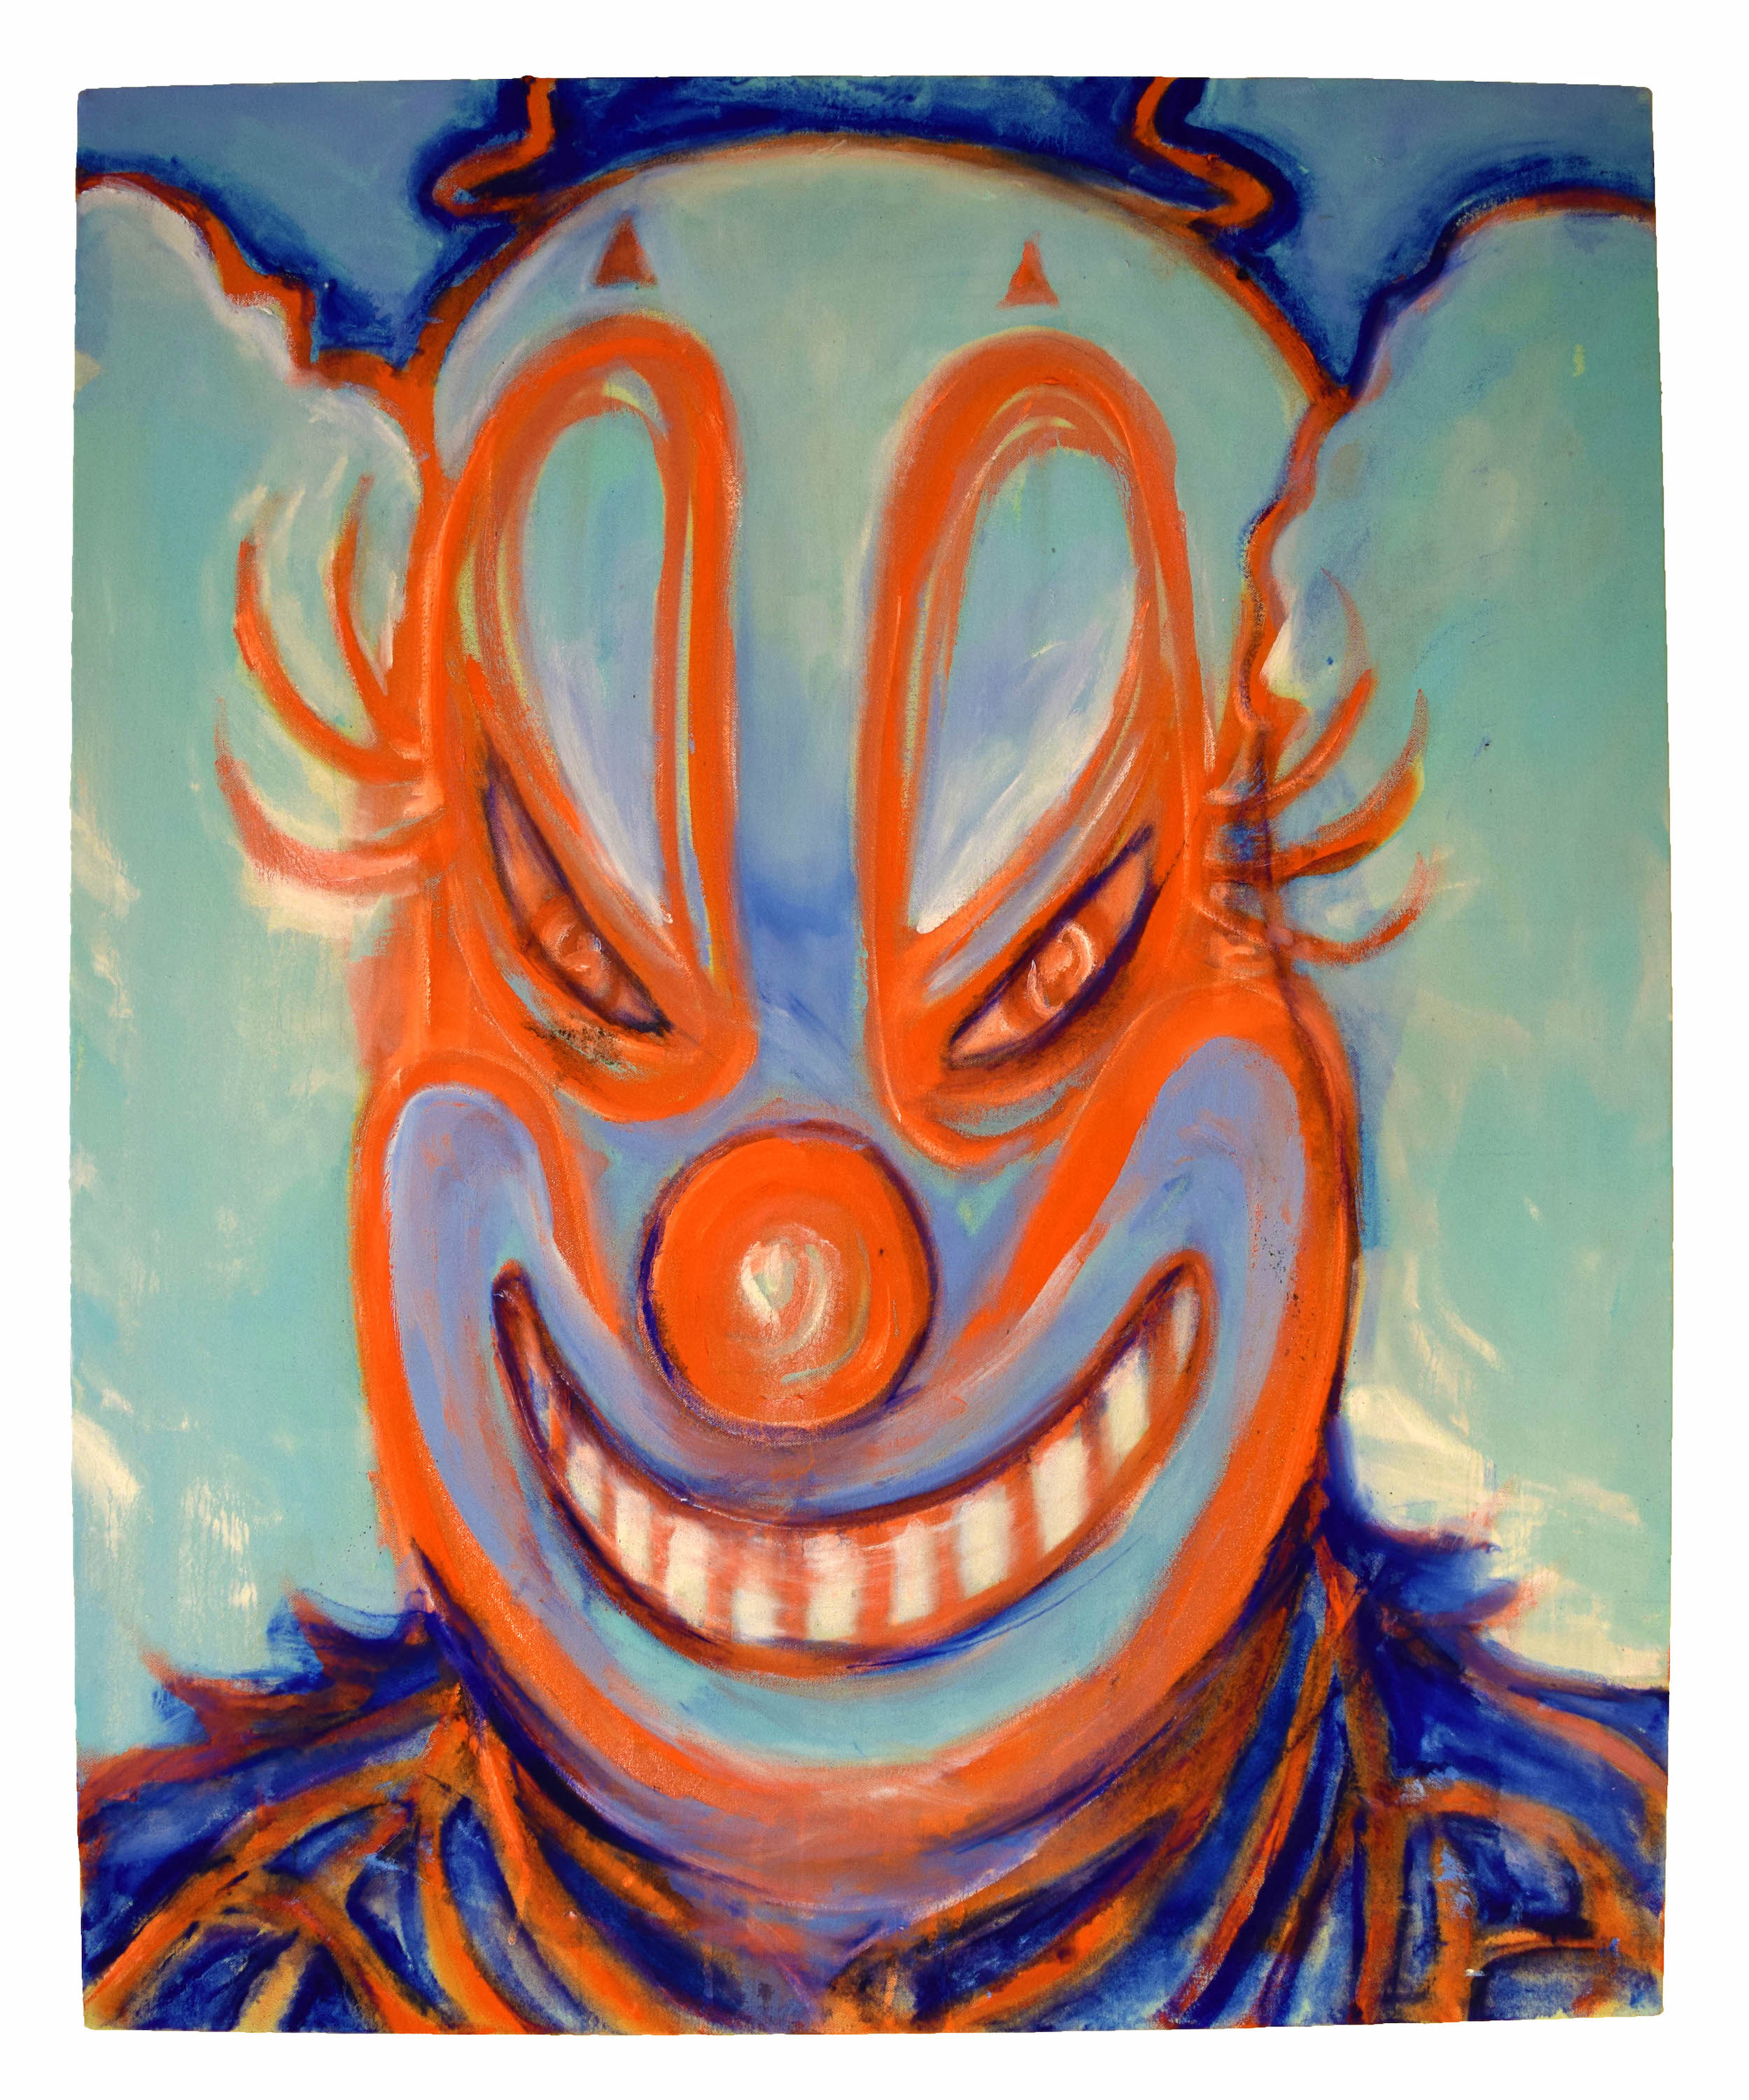 """Smiling clown"" , Oil paint, acrylic paint, spray paint and ink on canvas. 37"" x 30"" x 1""."